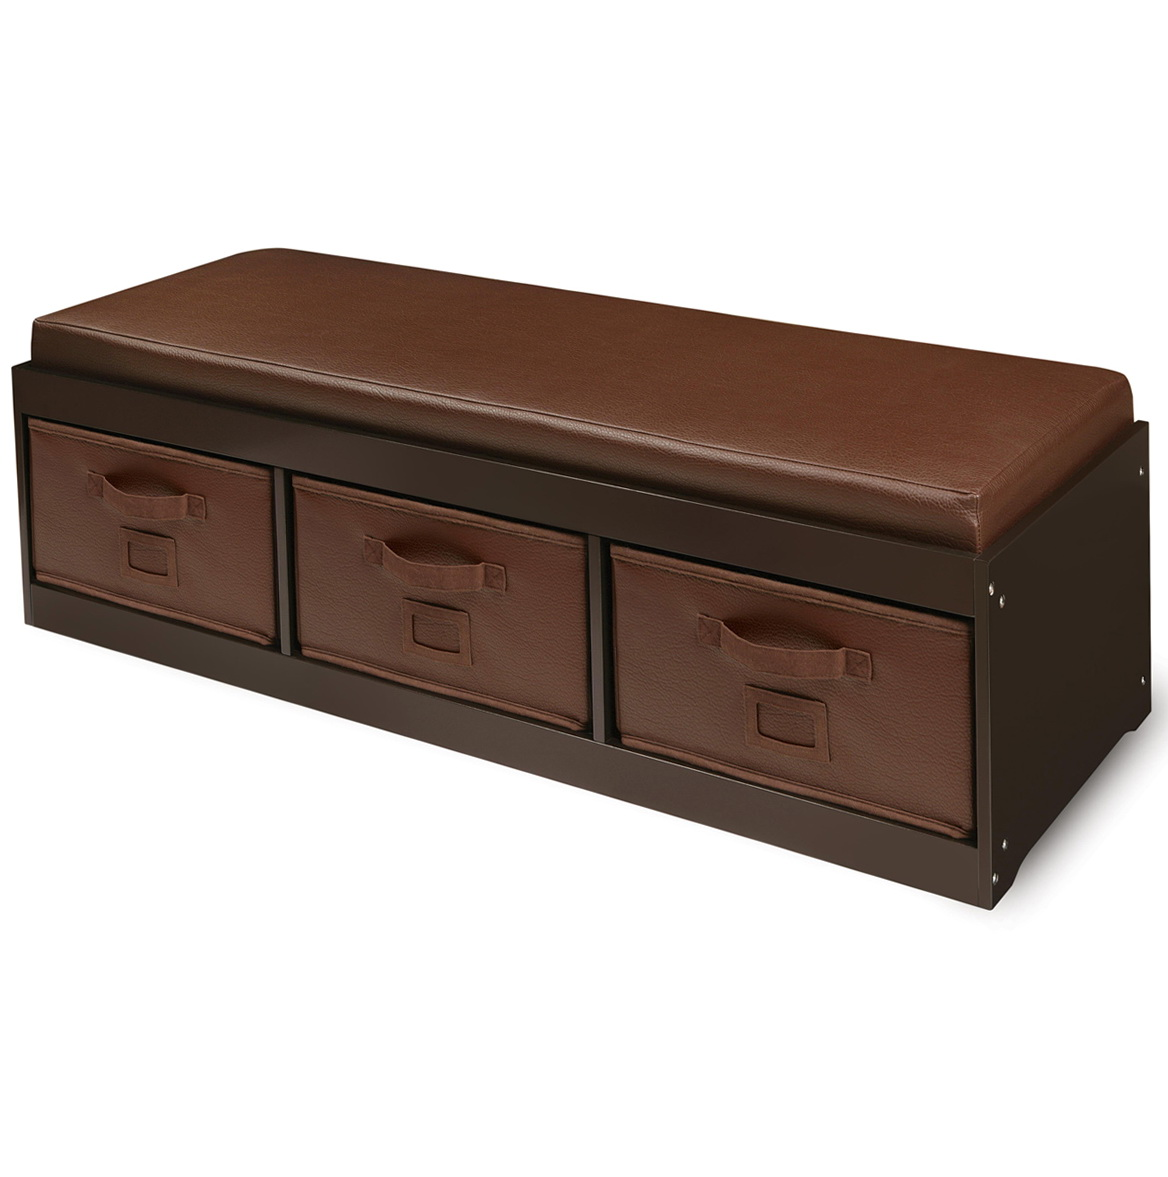 Toy Storage Bench Seat